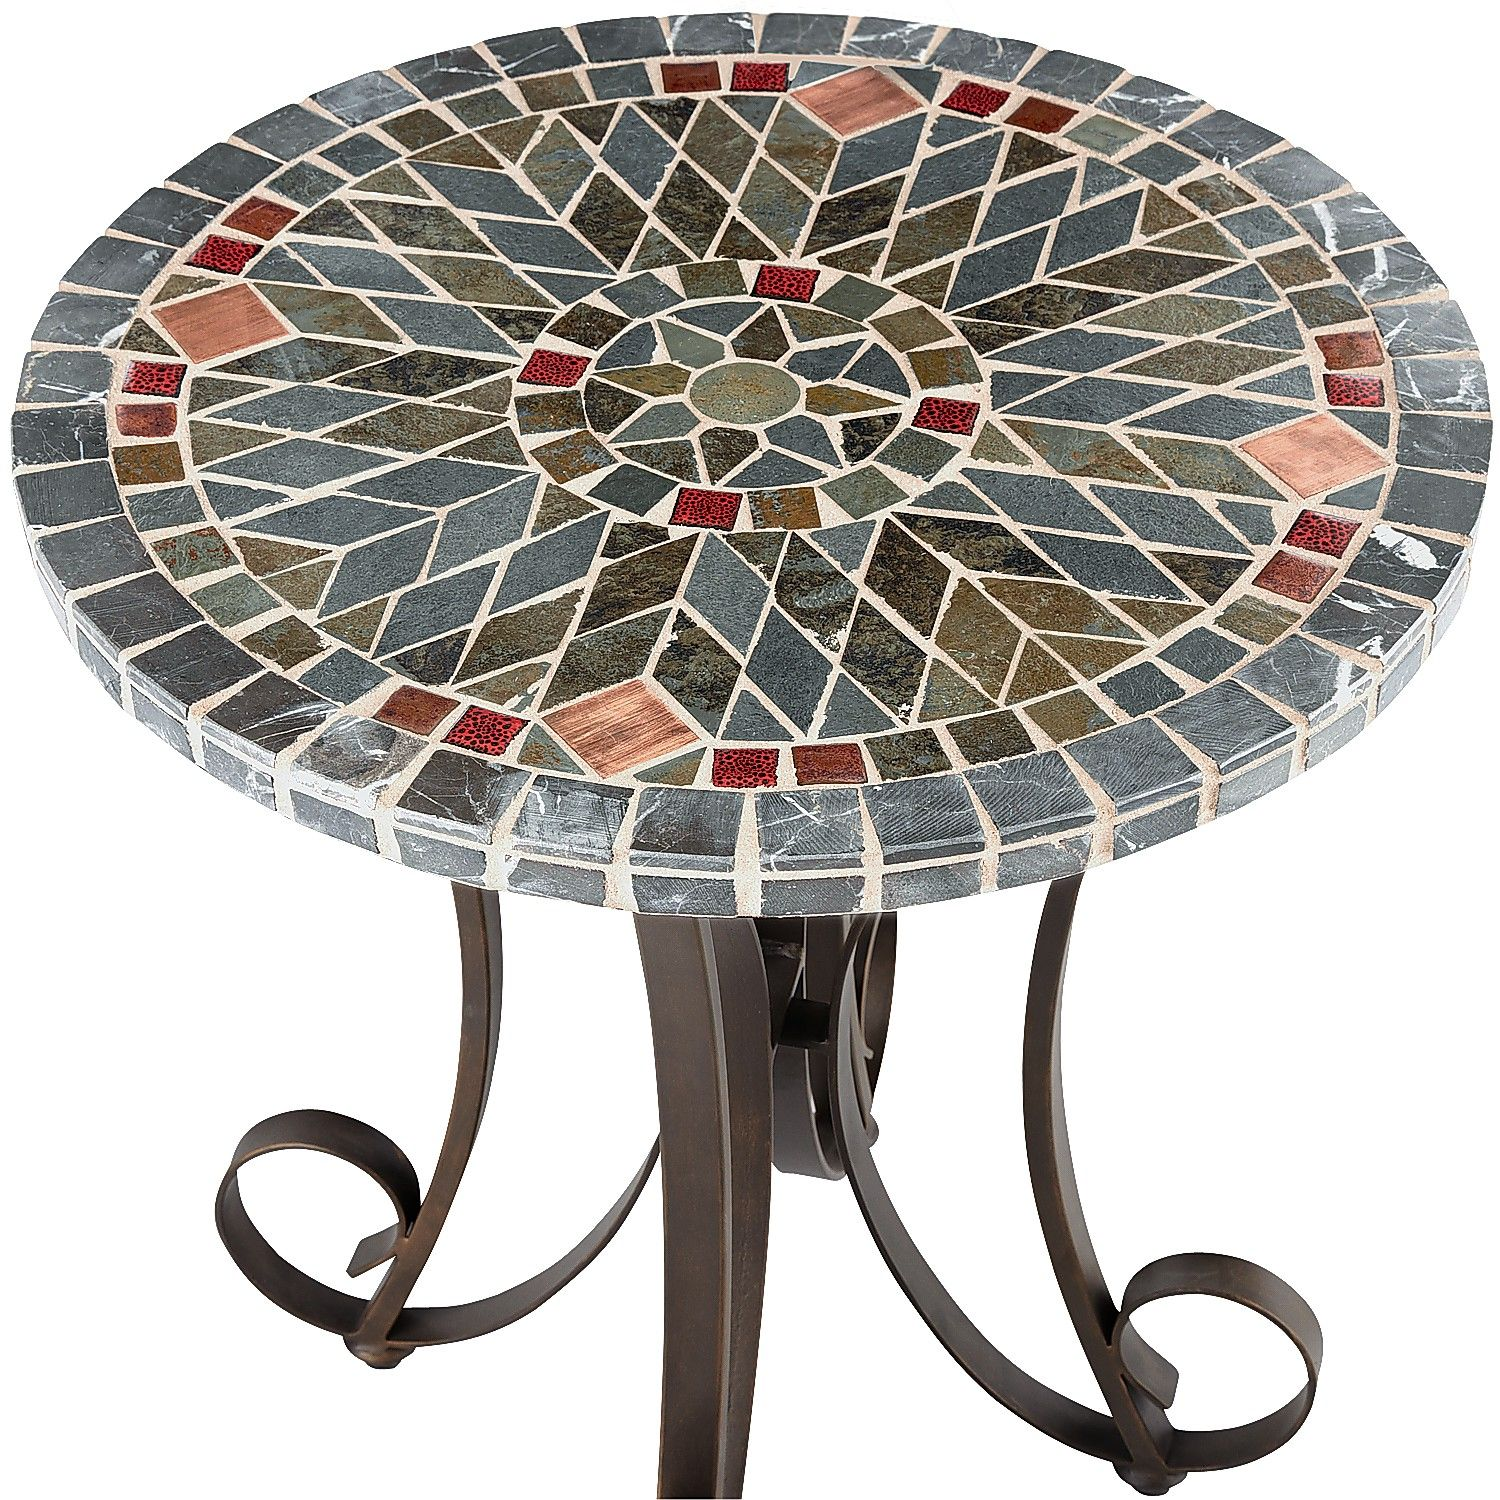 mosaic accent table jigsy decmode traditional inch round zaltana outdoor patio verazze zoom pier imports white wicker coffee affordable furniture the living room small iron side